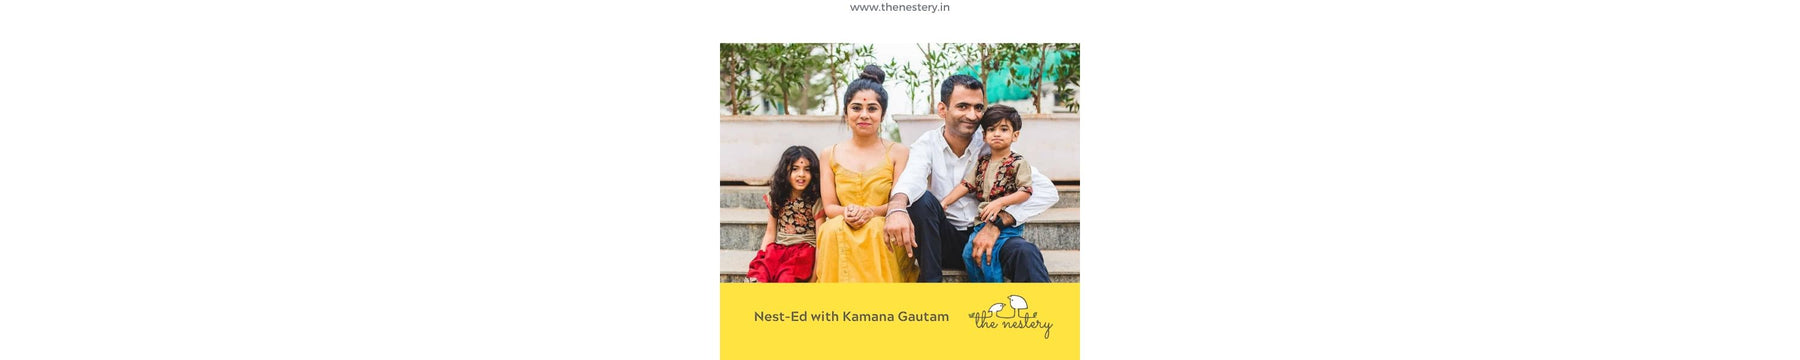 Nest-Ed with Kamana Gautam